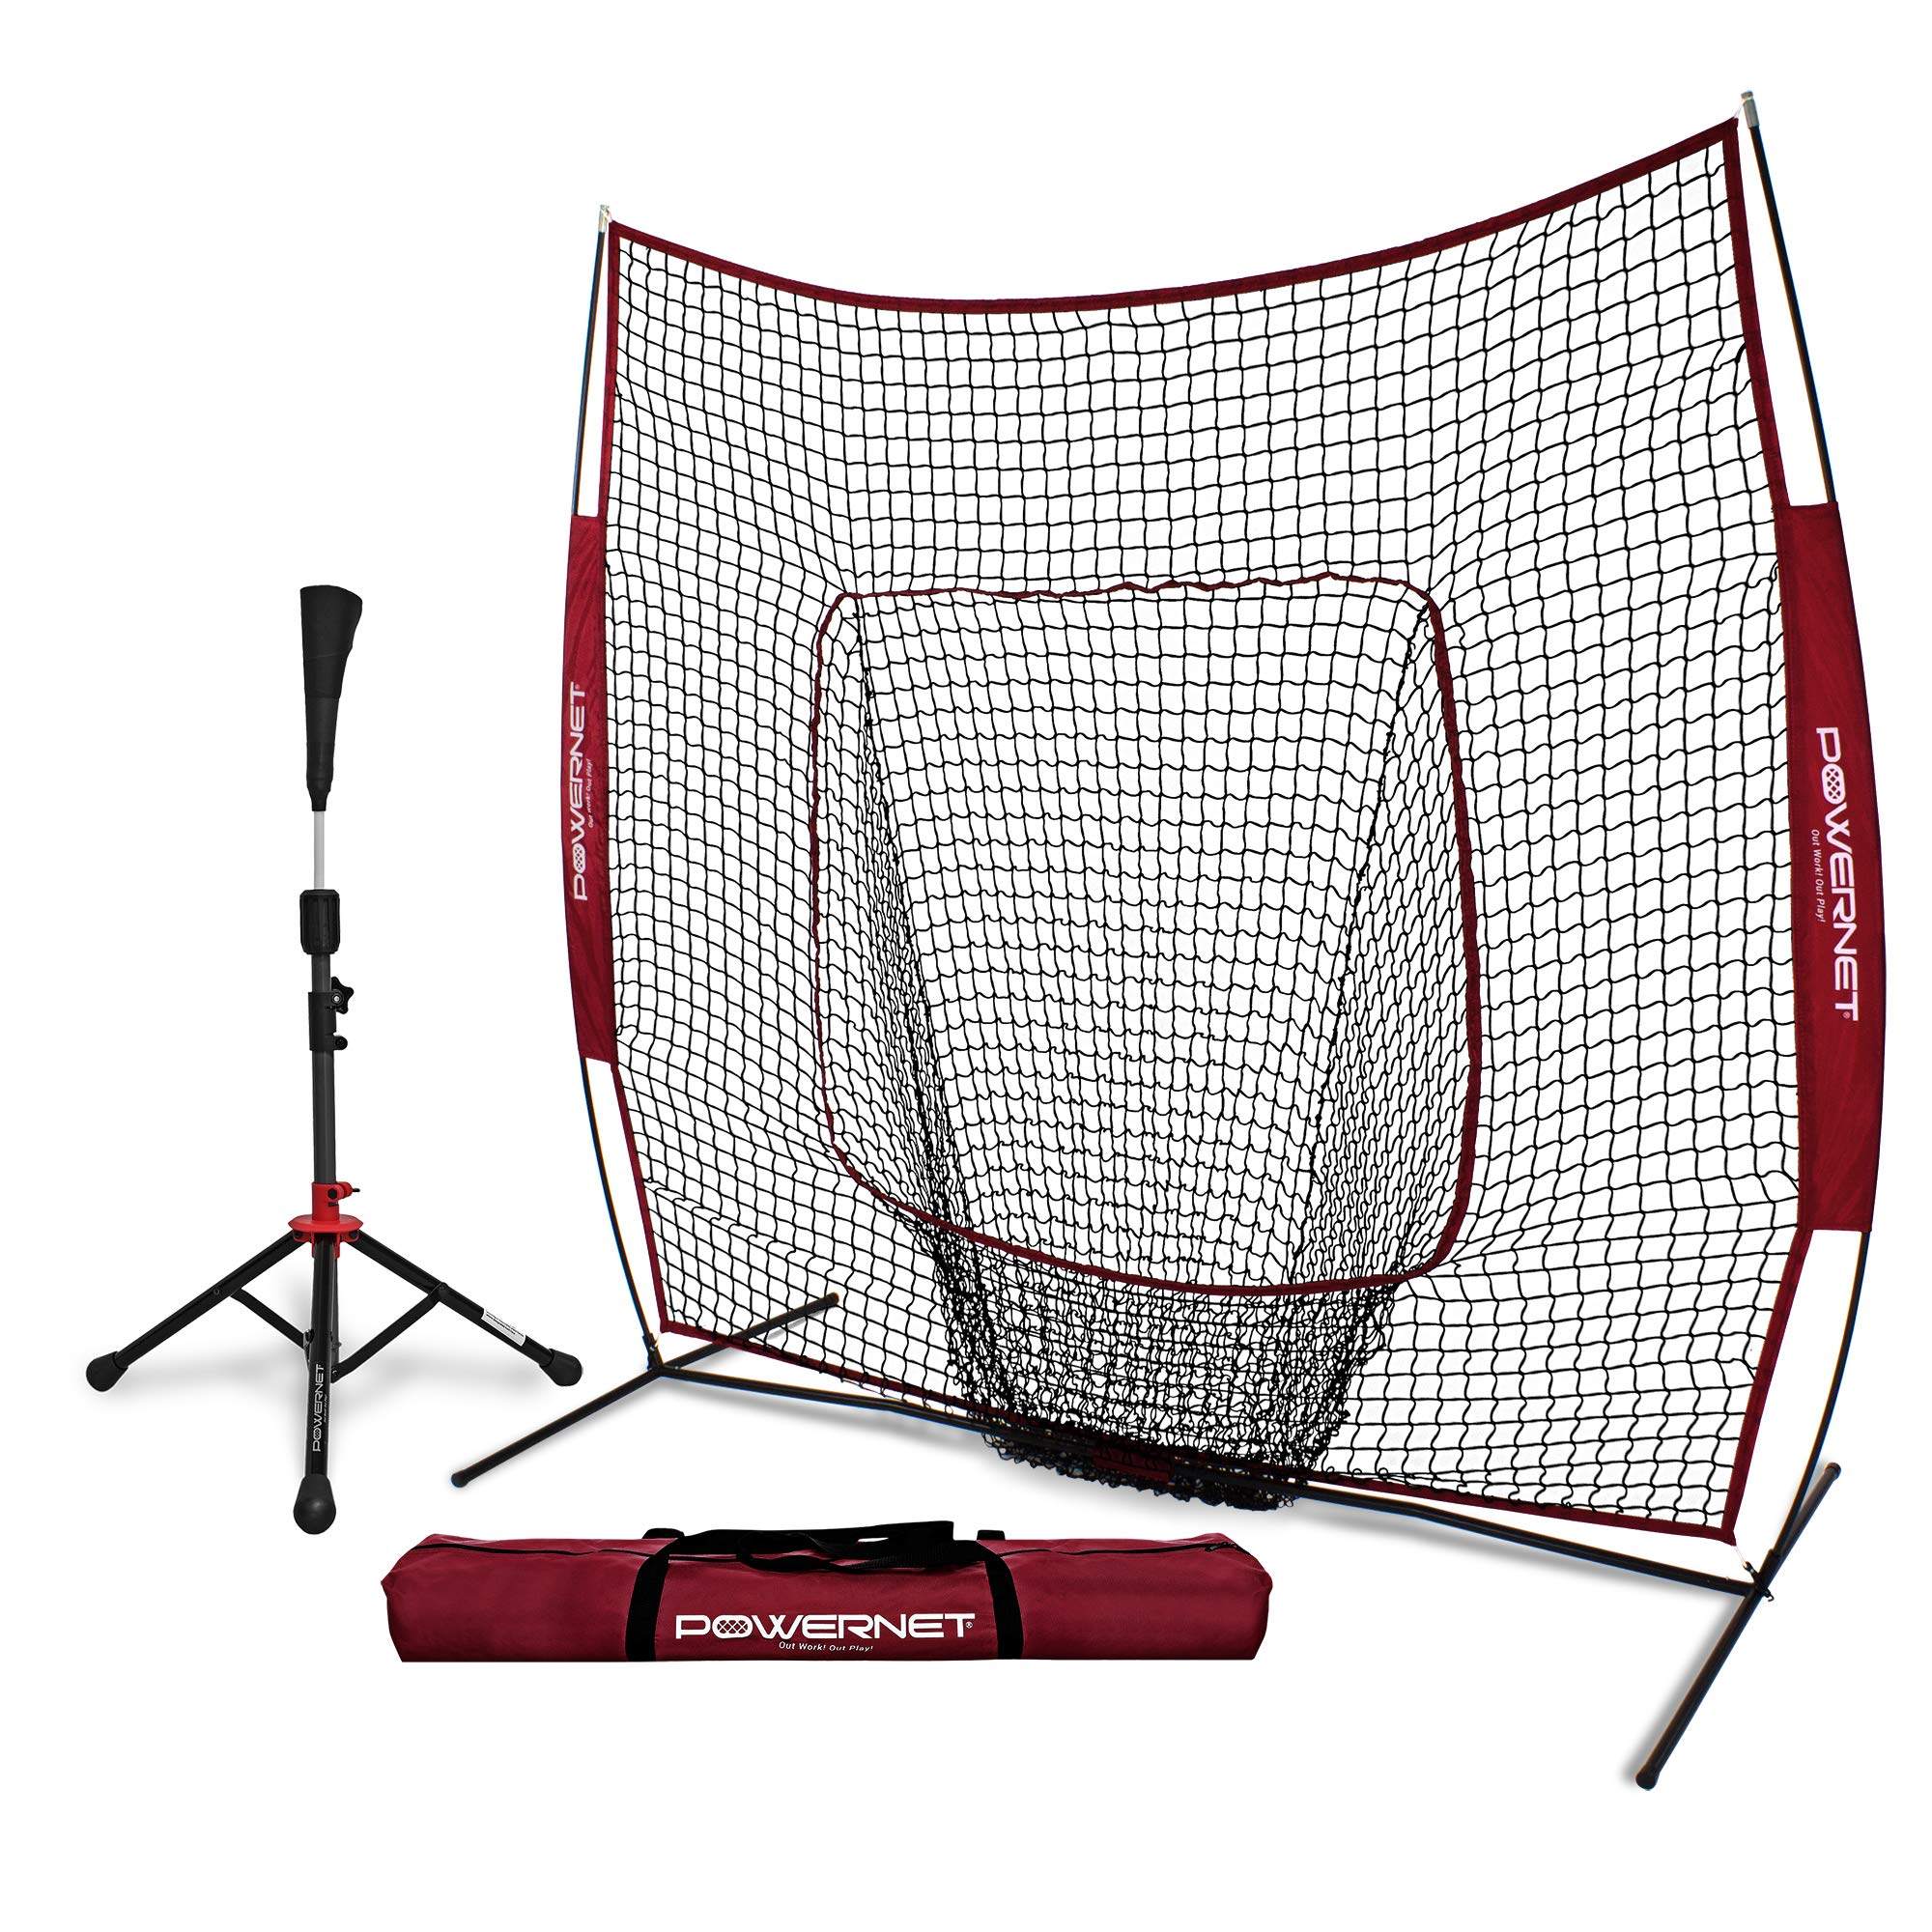 PowerNet Baseball Softball Practice Net 7x7 with Deluxe Tee (Maroon) | Practice Hitting, Pitching, Batting, Fielding | Portable, Backstop, Training Aid, Lg Mouth, Bow frame | Training Equipment Bundle by PowerNet